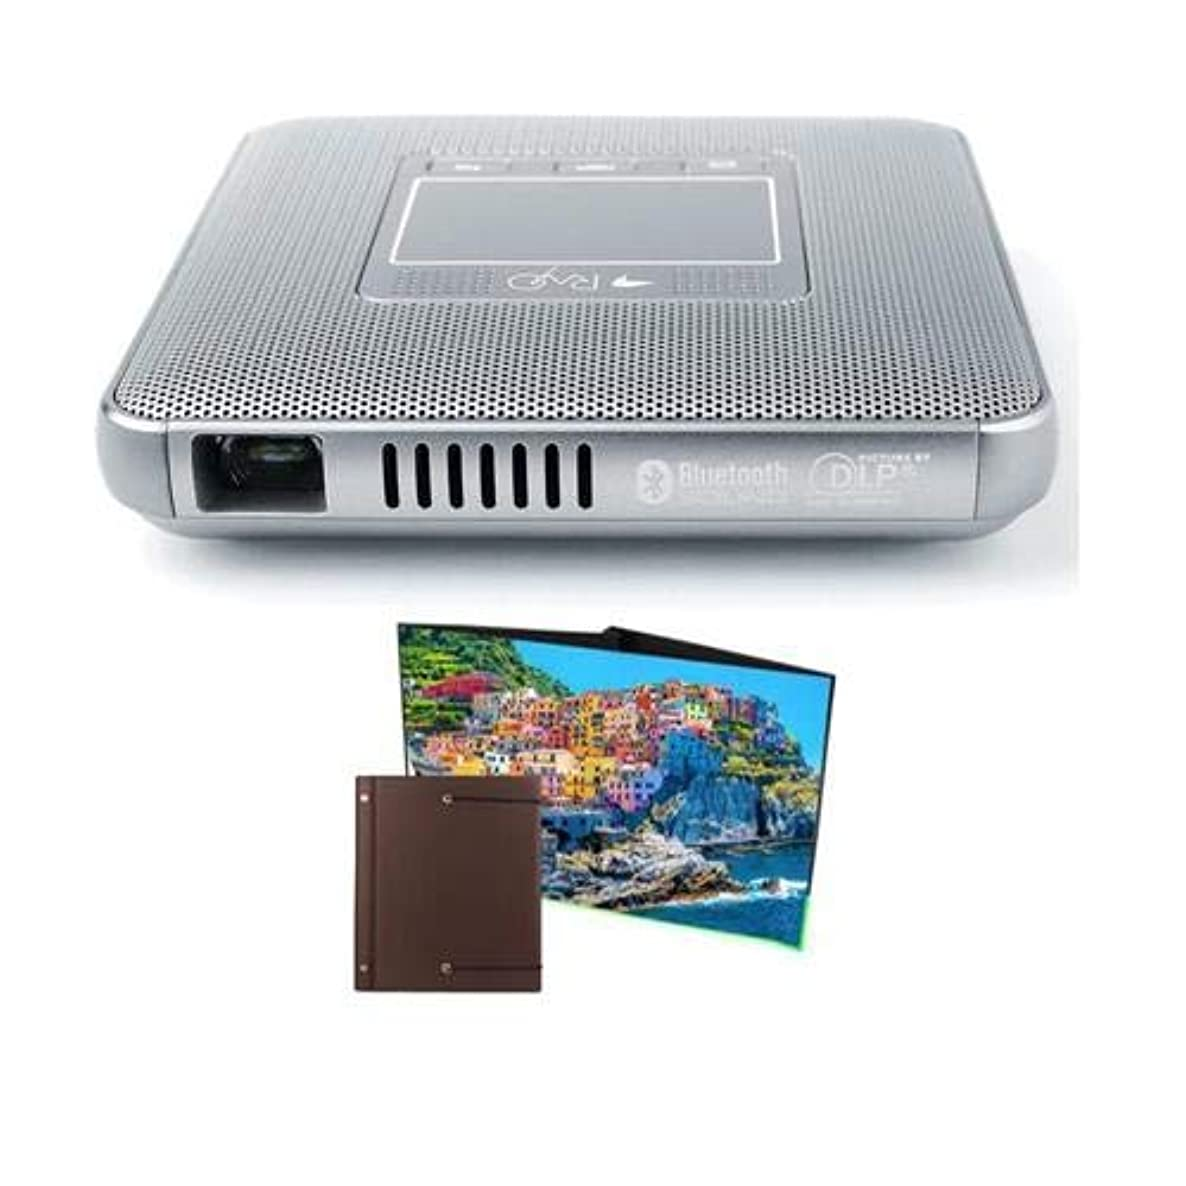 Canon Rayo S1 Mini Projector, 100 Lumens, WVGA, Silver Rayo Portable Table Top Projection Screen, 11.7x16.4, Wide x Tall